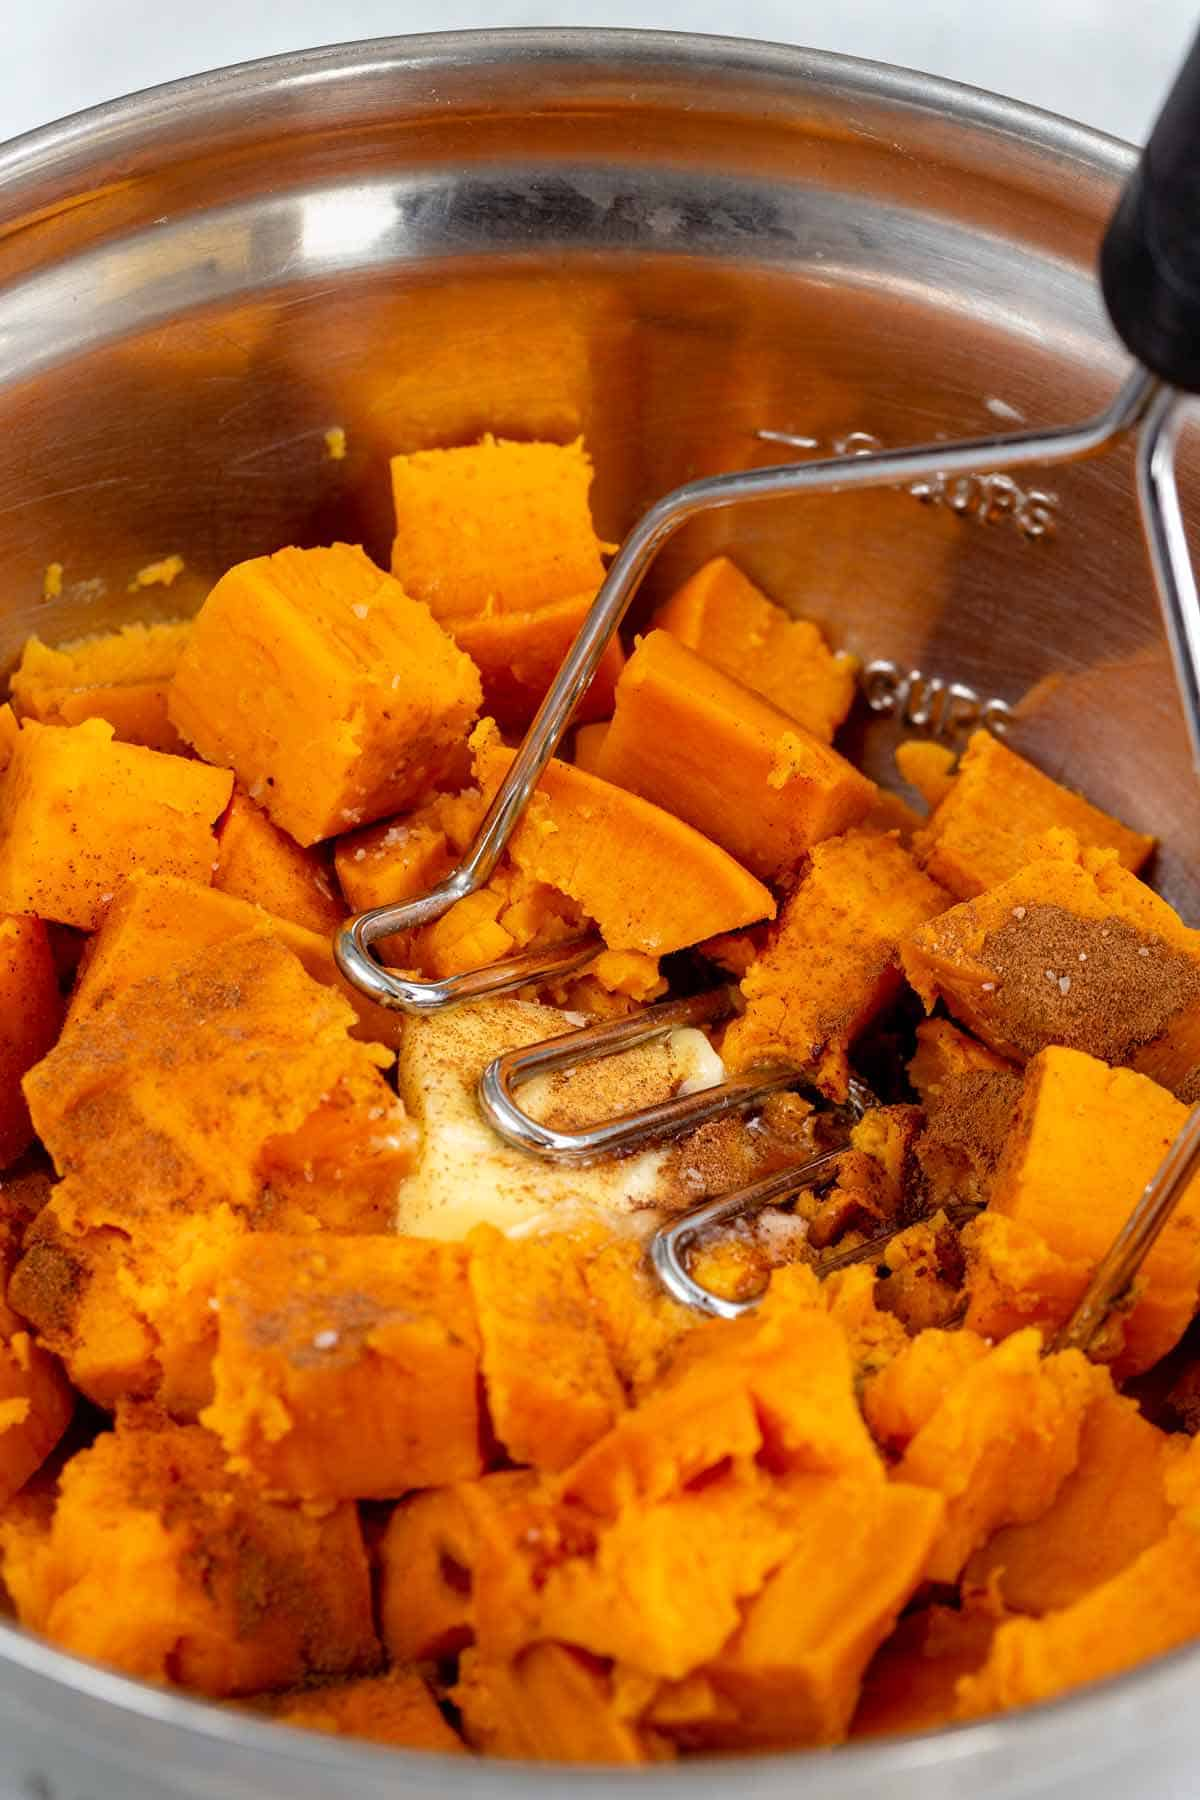 using a potato masher in a bowl with cubes of sweet potatoes